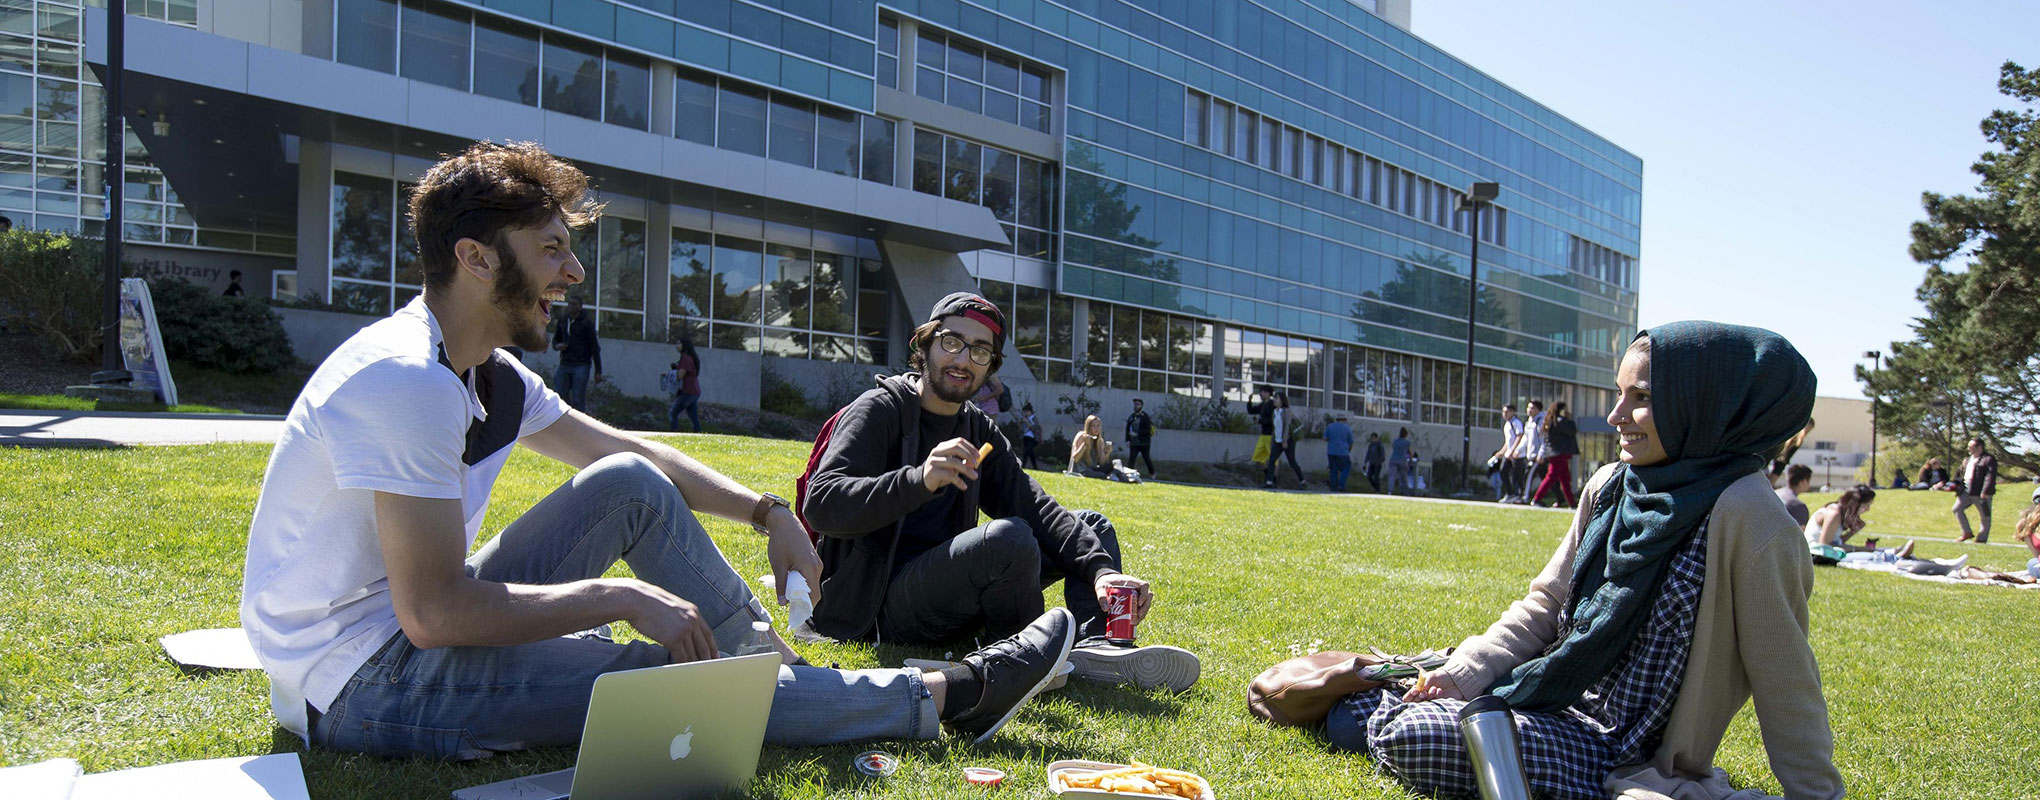 Three students sitting on the grass